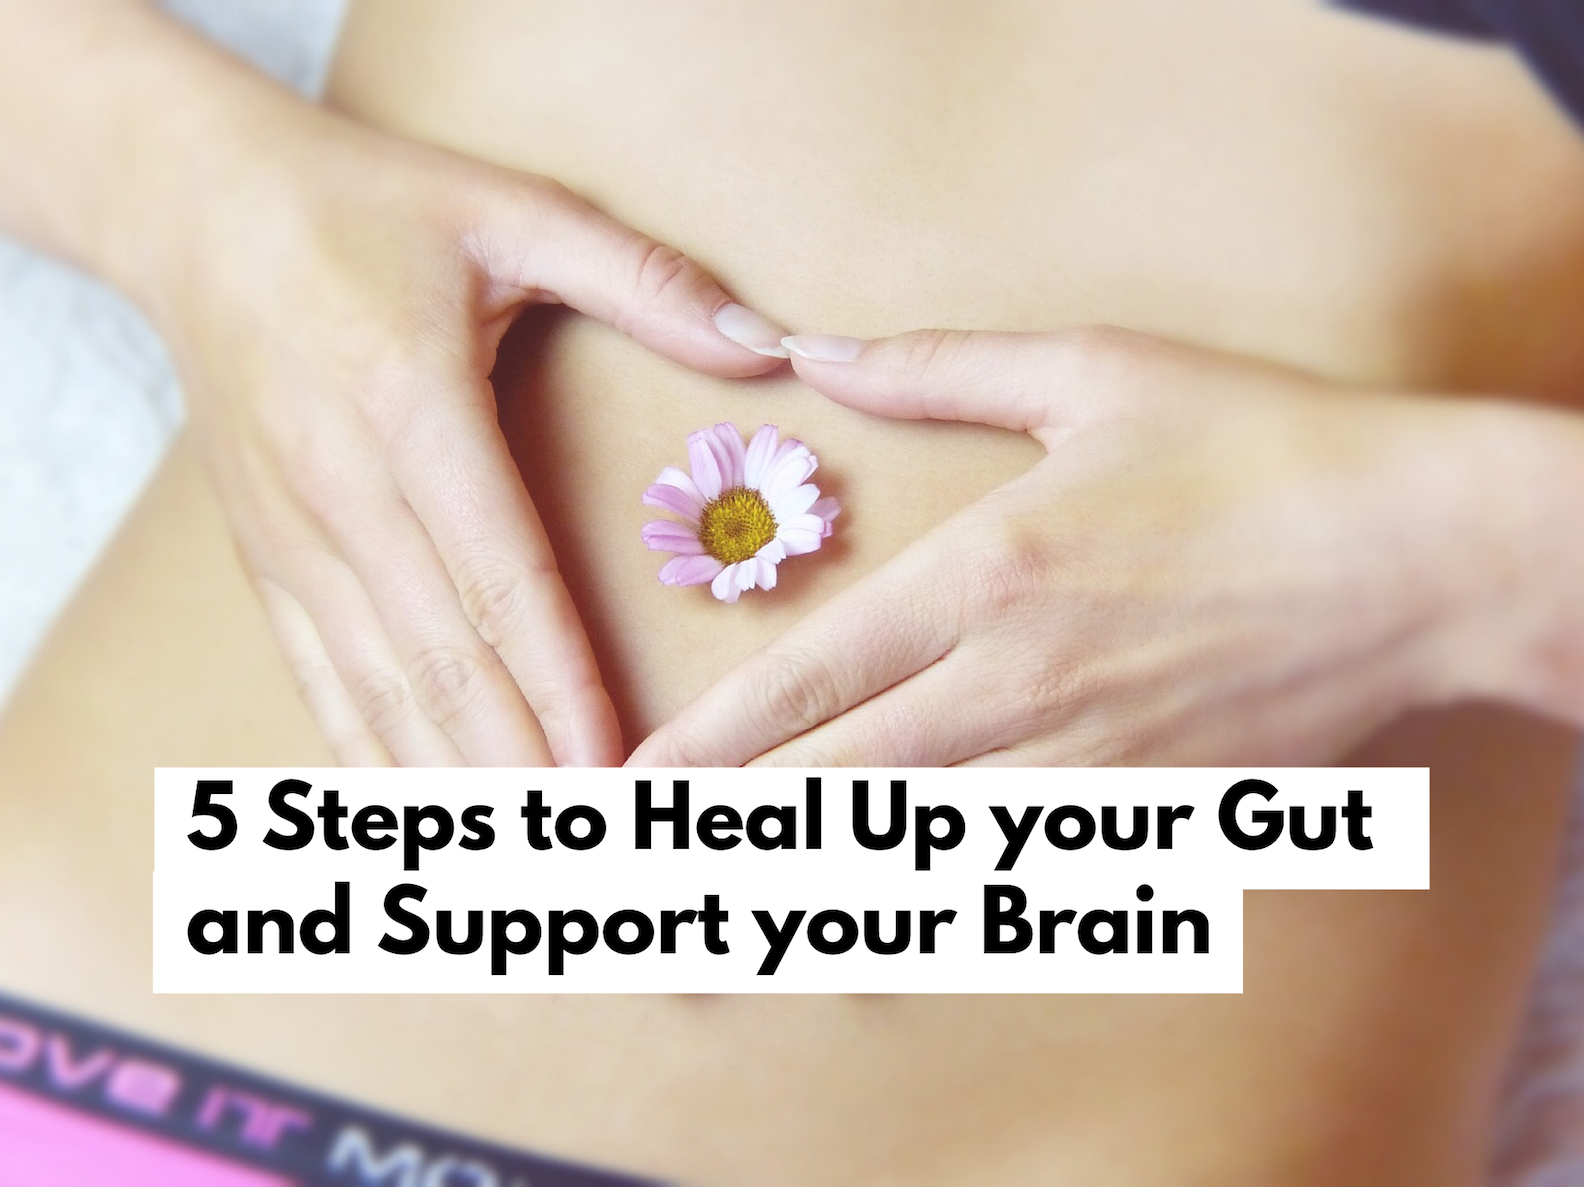 5 Steps to Heal up your Gut and Support Your Brain!